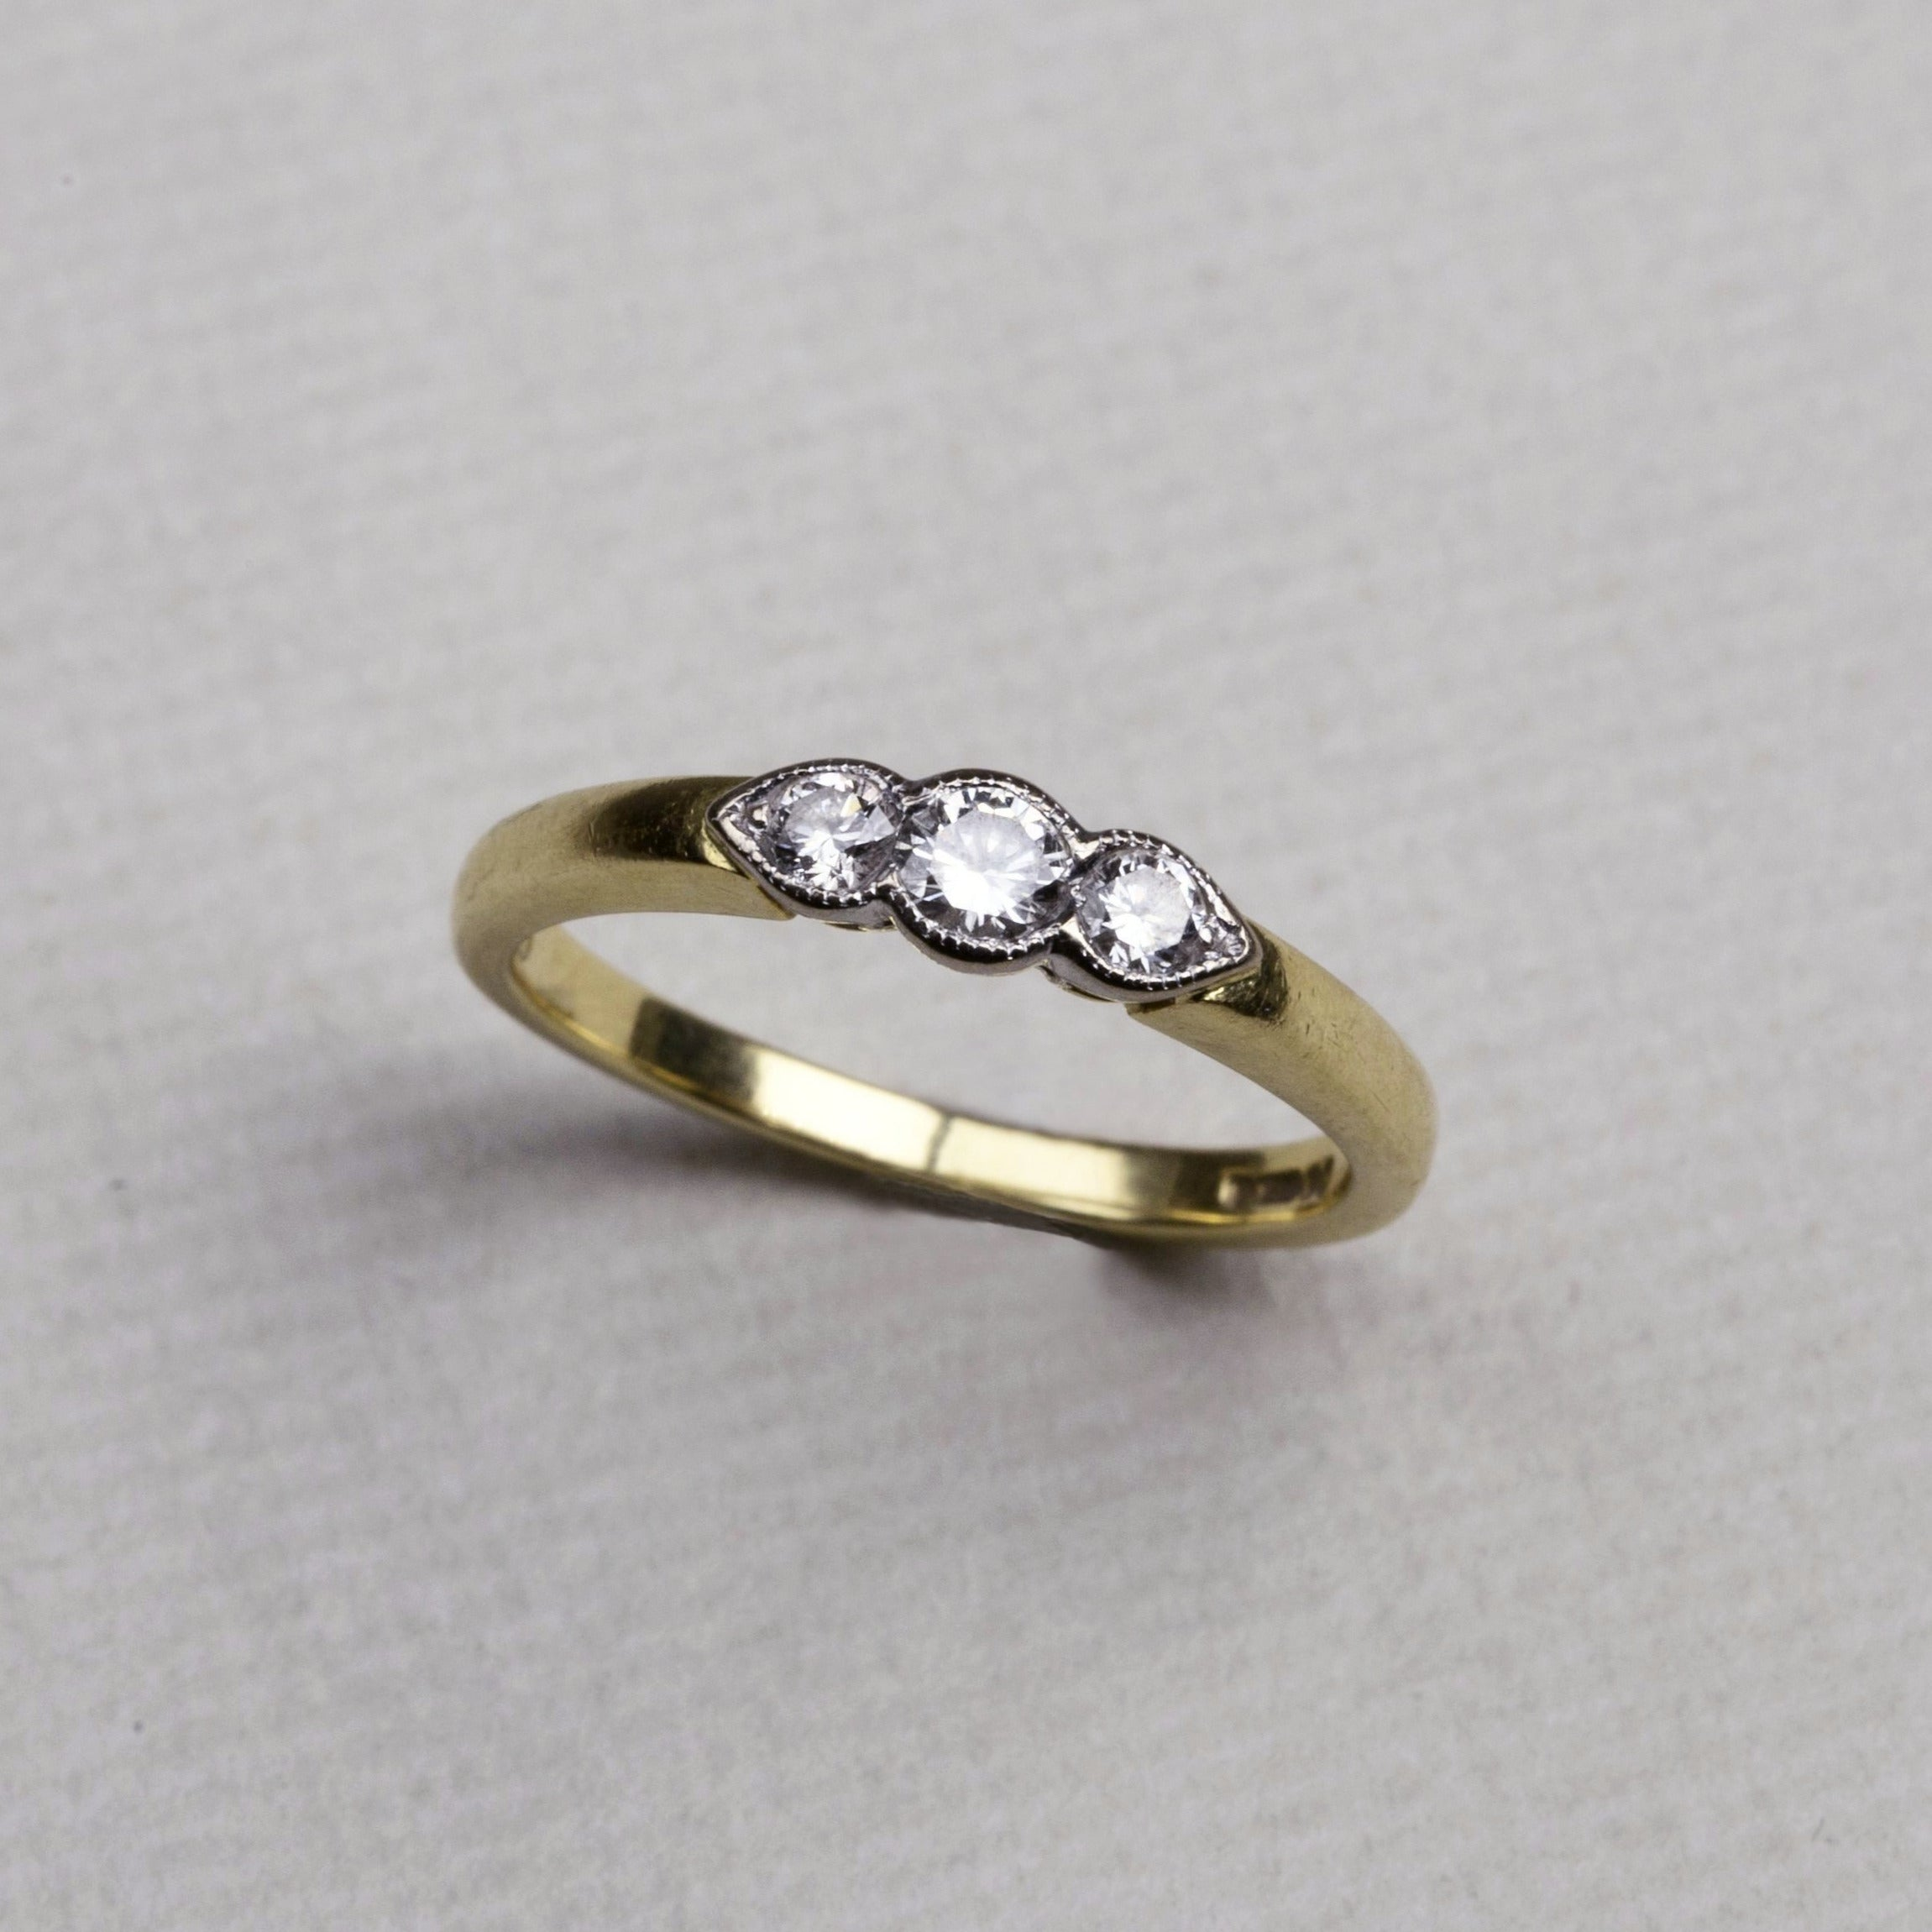 18ct gold with 3 diamonds